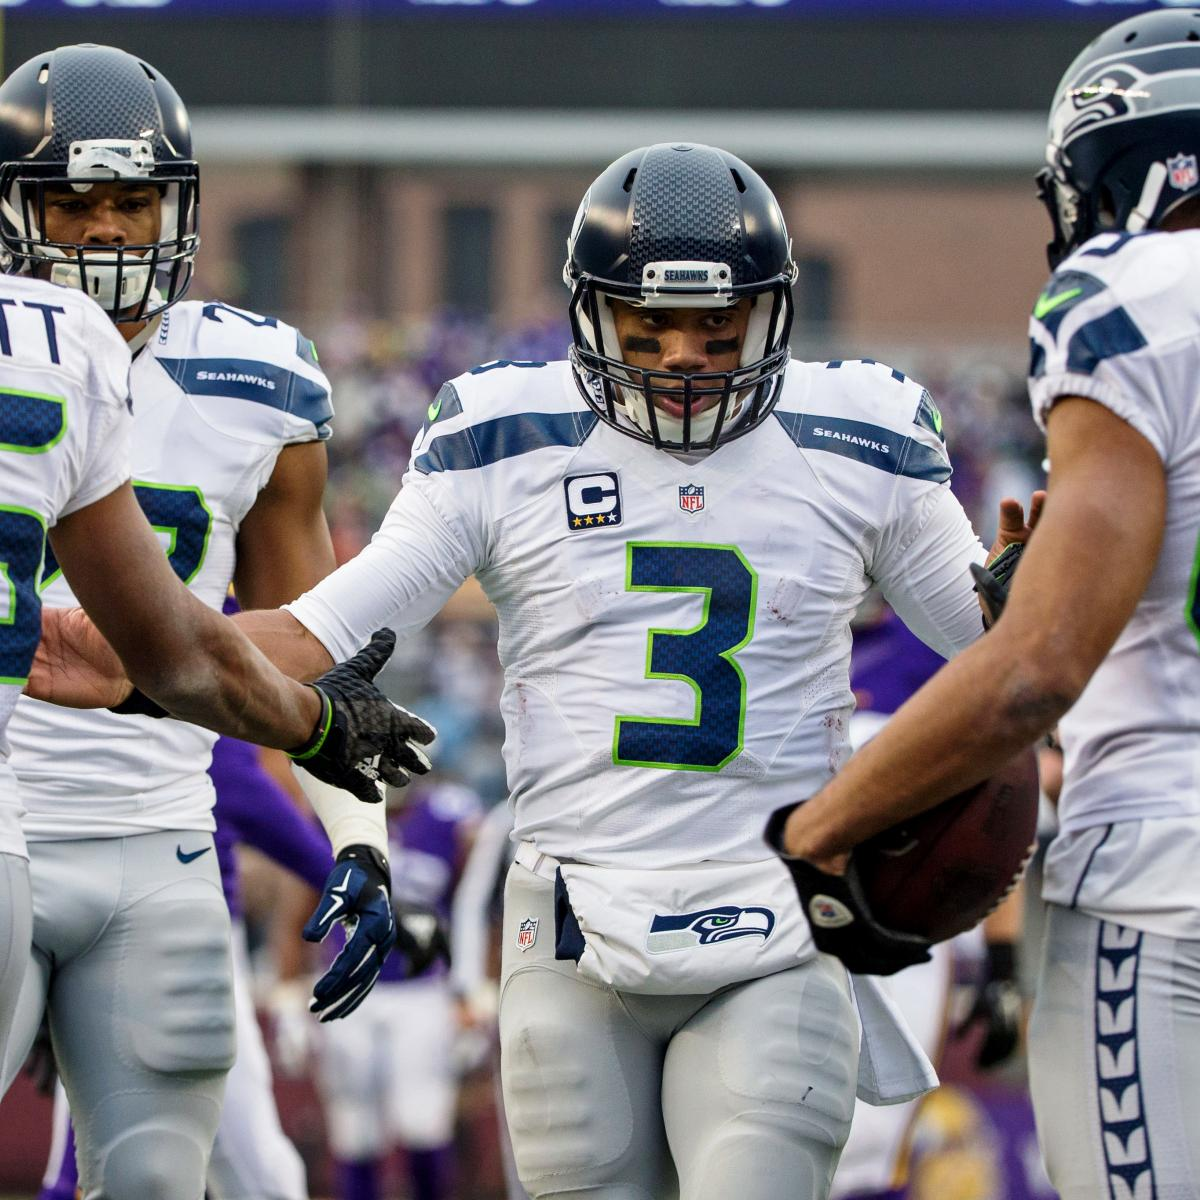 NFL Standings 2015: Week 14 Records, Playoff Scenarios